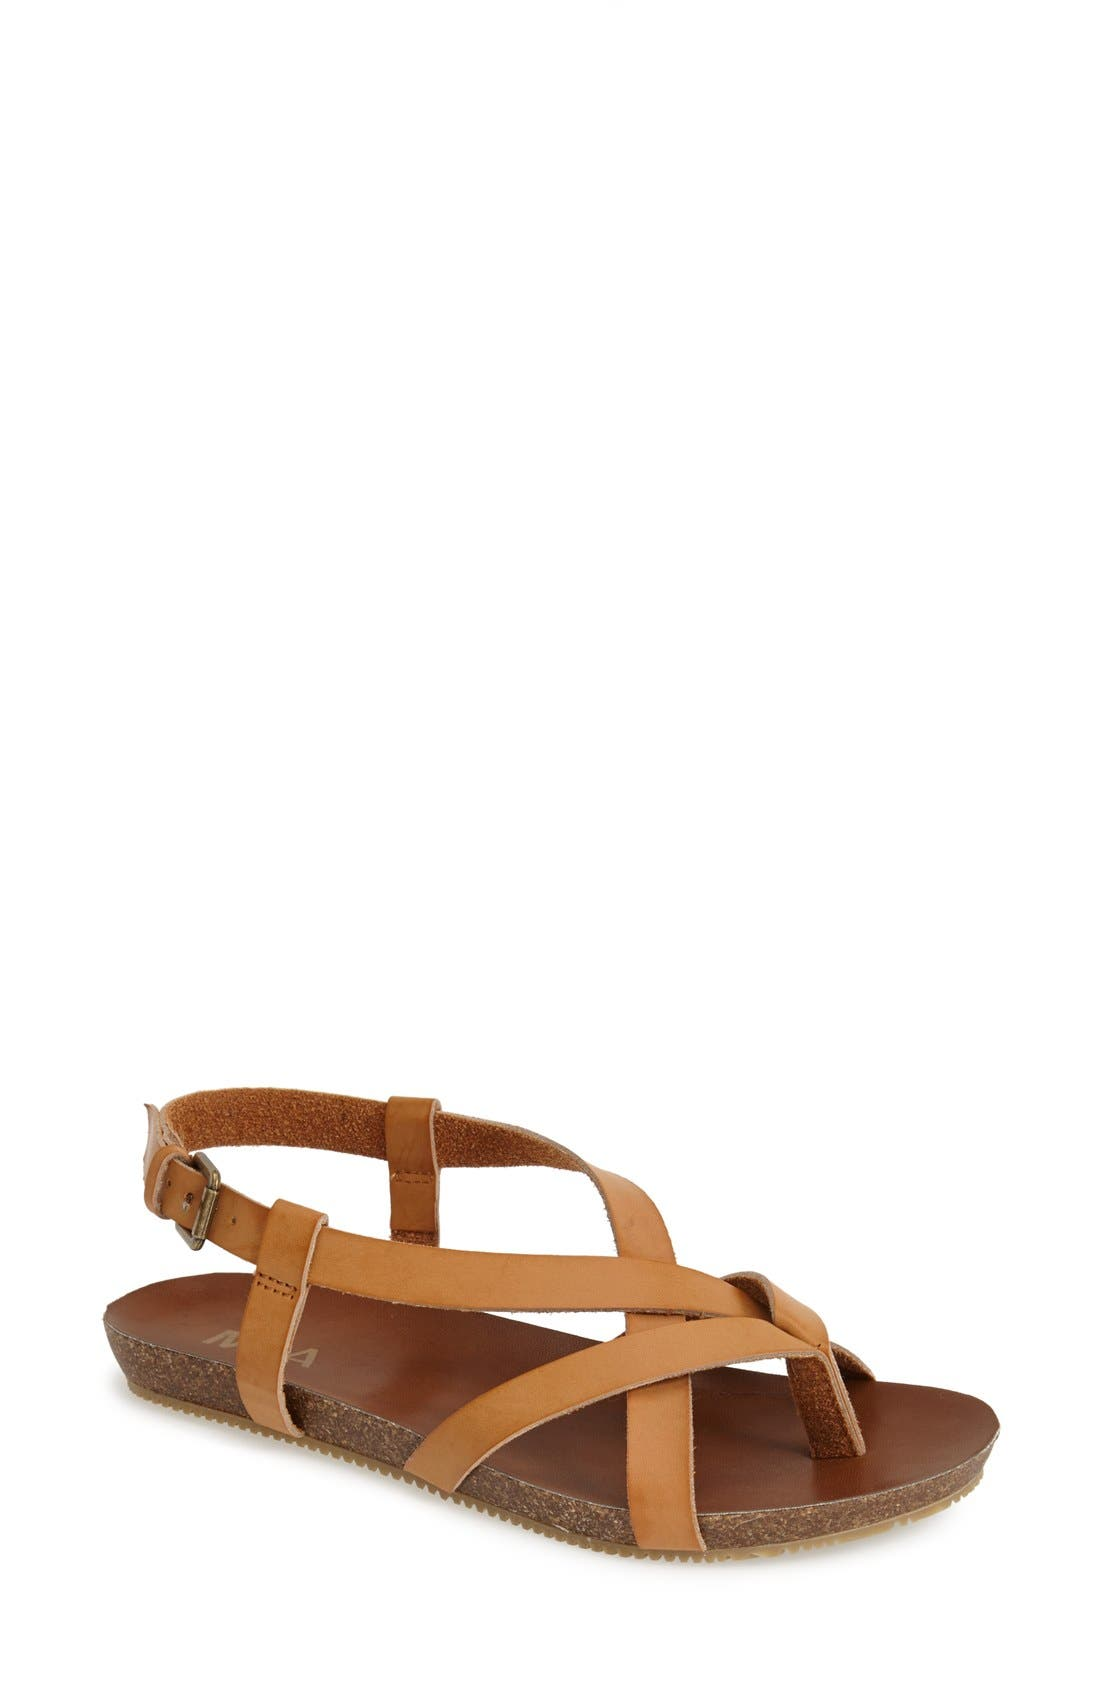 Alternate Image 1 Selected - MIA 'Wildcard' Sandal (Women)